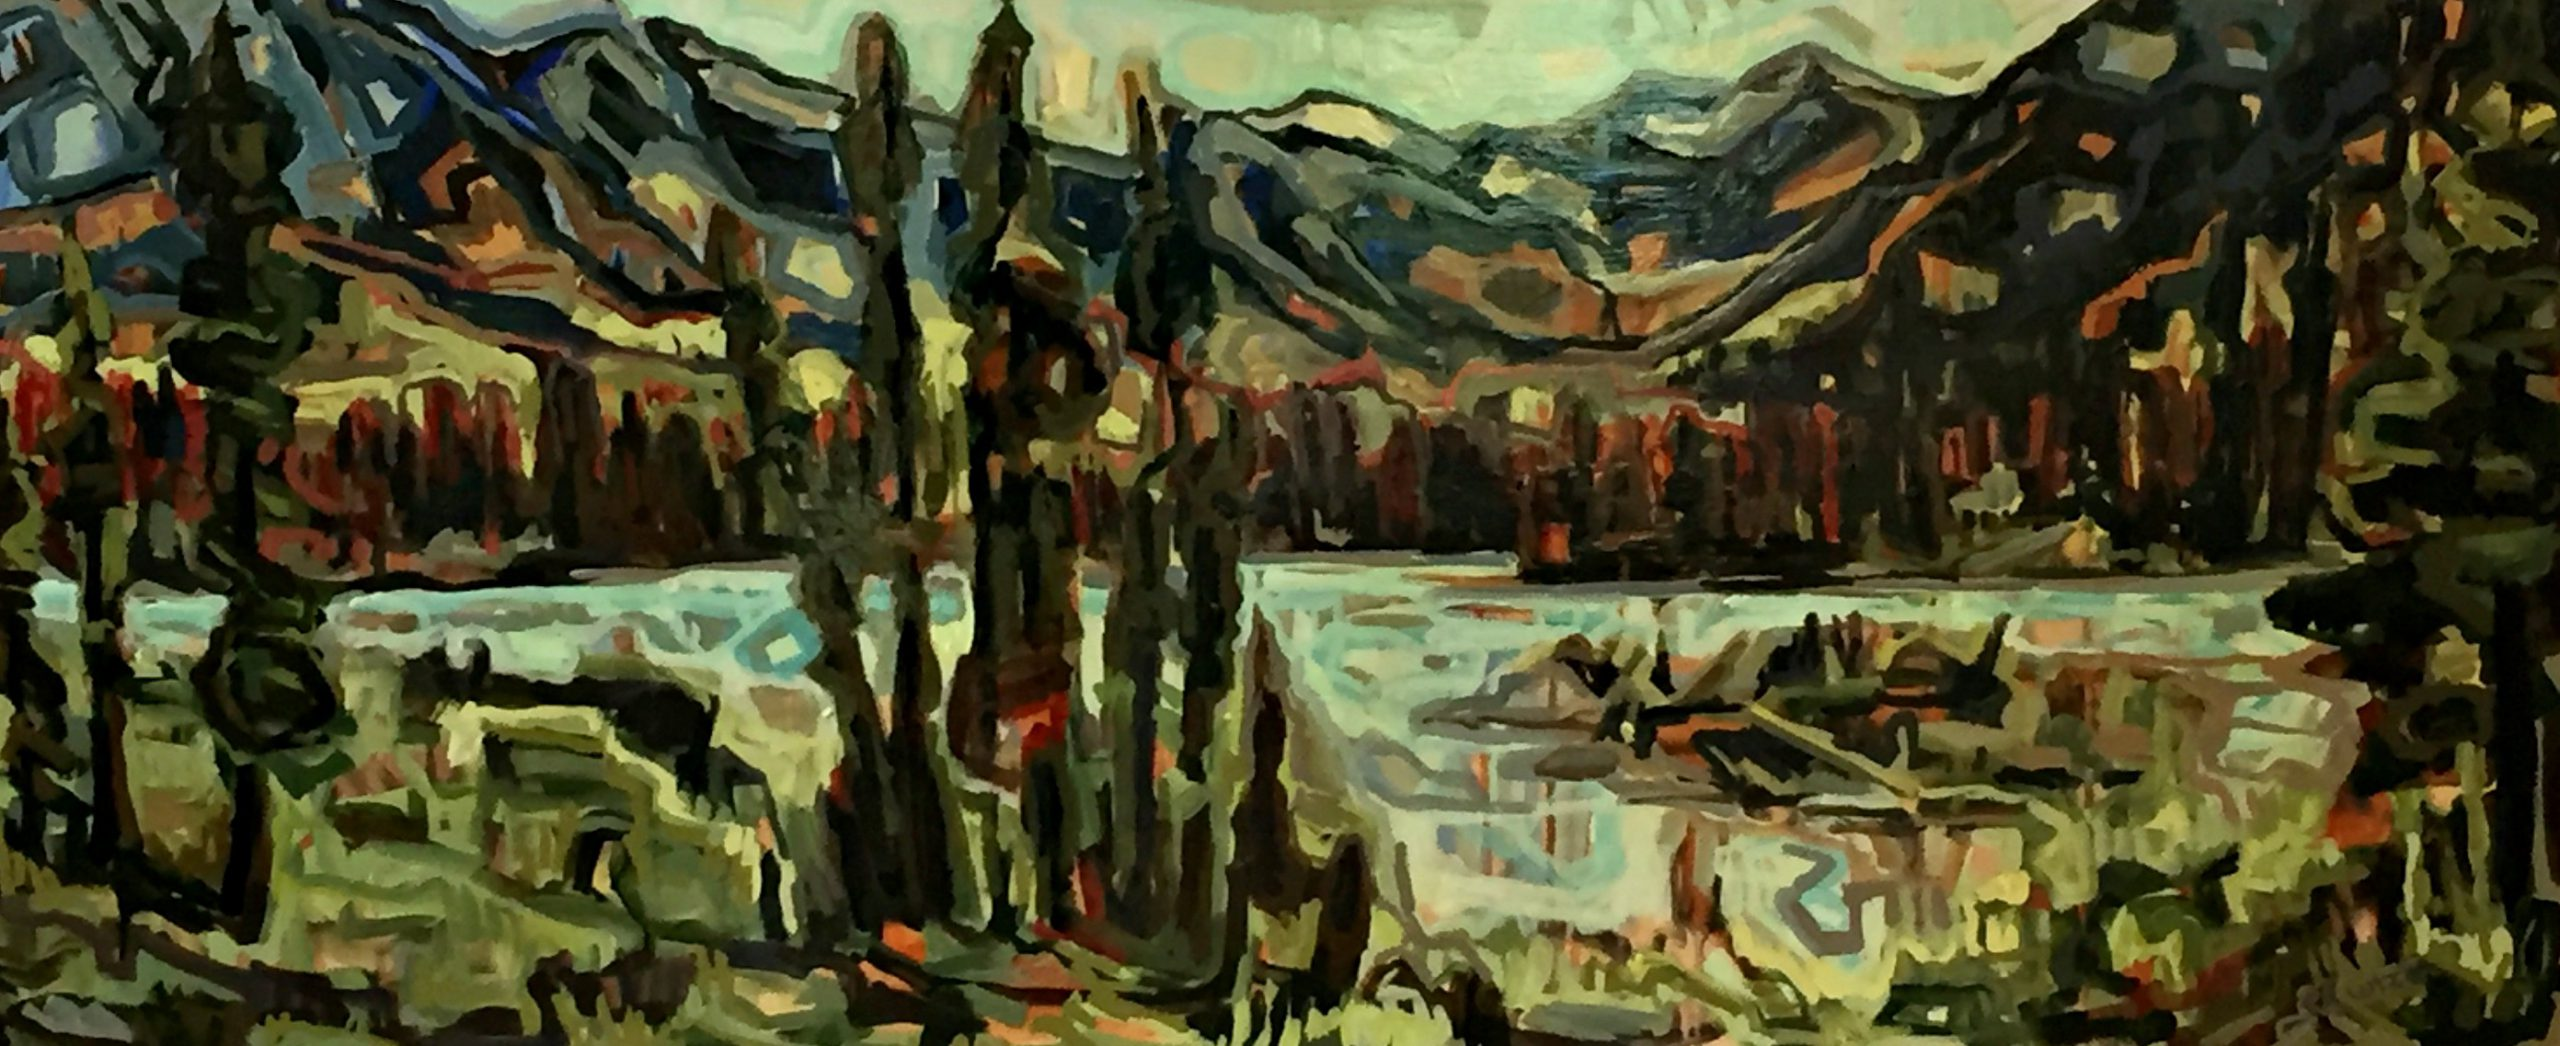 Simpson Monument, acrylic painting by Sandy Kunze   Effusion Art Gallery + Cast Glass Studio, Invermere BC